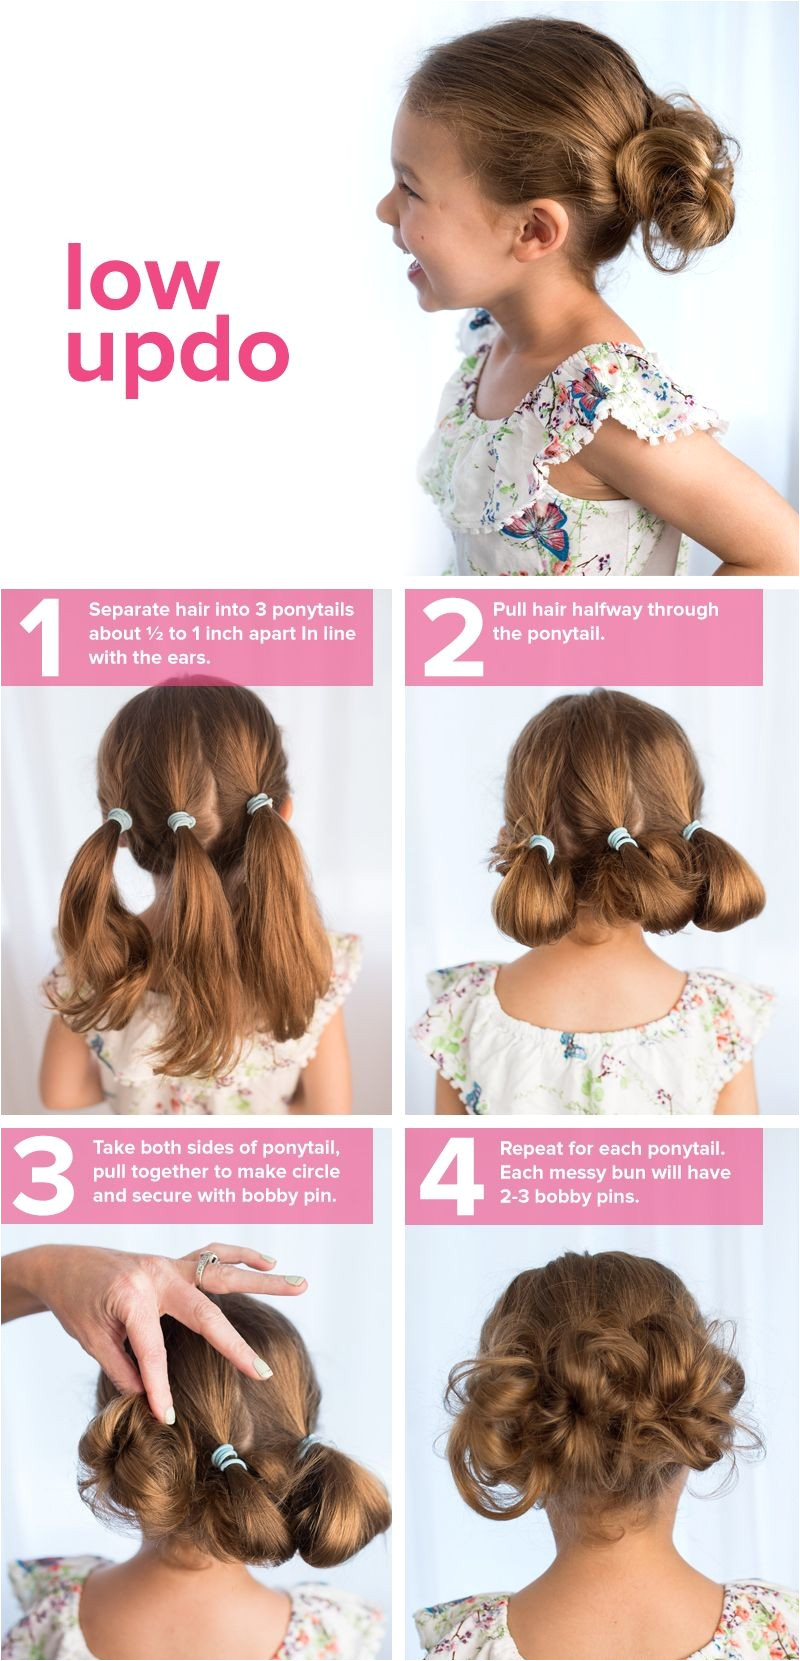 Hairstyle for Girls for School New 5 Fast Easy Cute Hairstyles for Girls Back to School